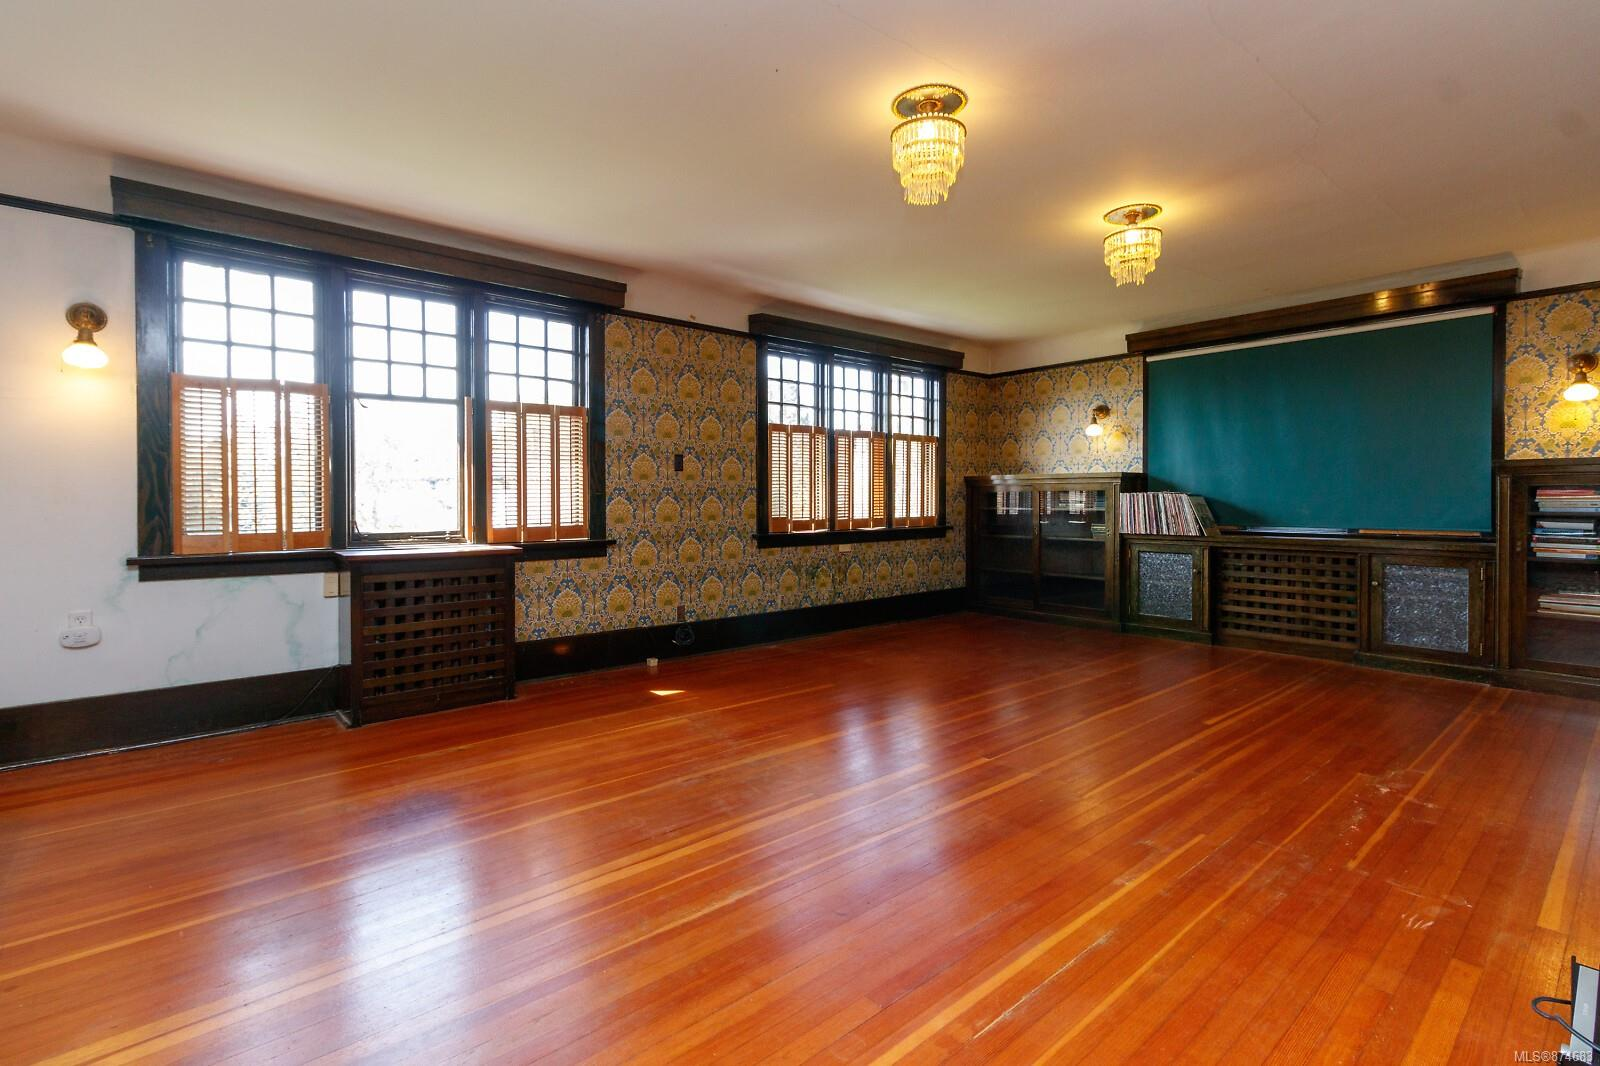 Photo 35 at 3 - 830 St. Charles Street, Rockland, Victoria